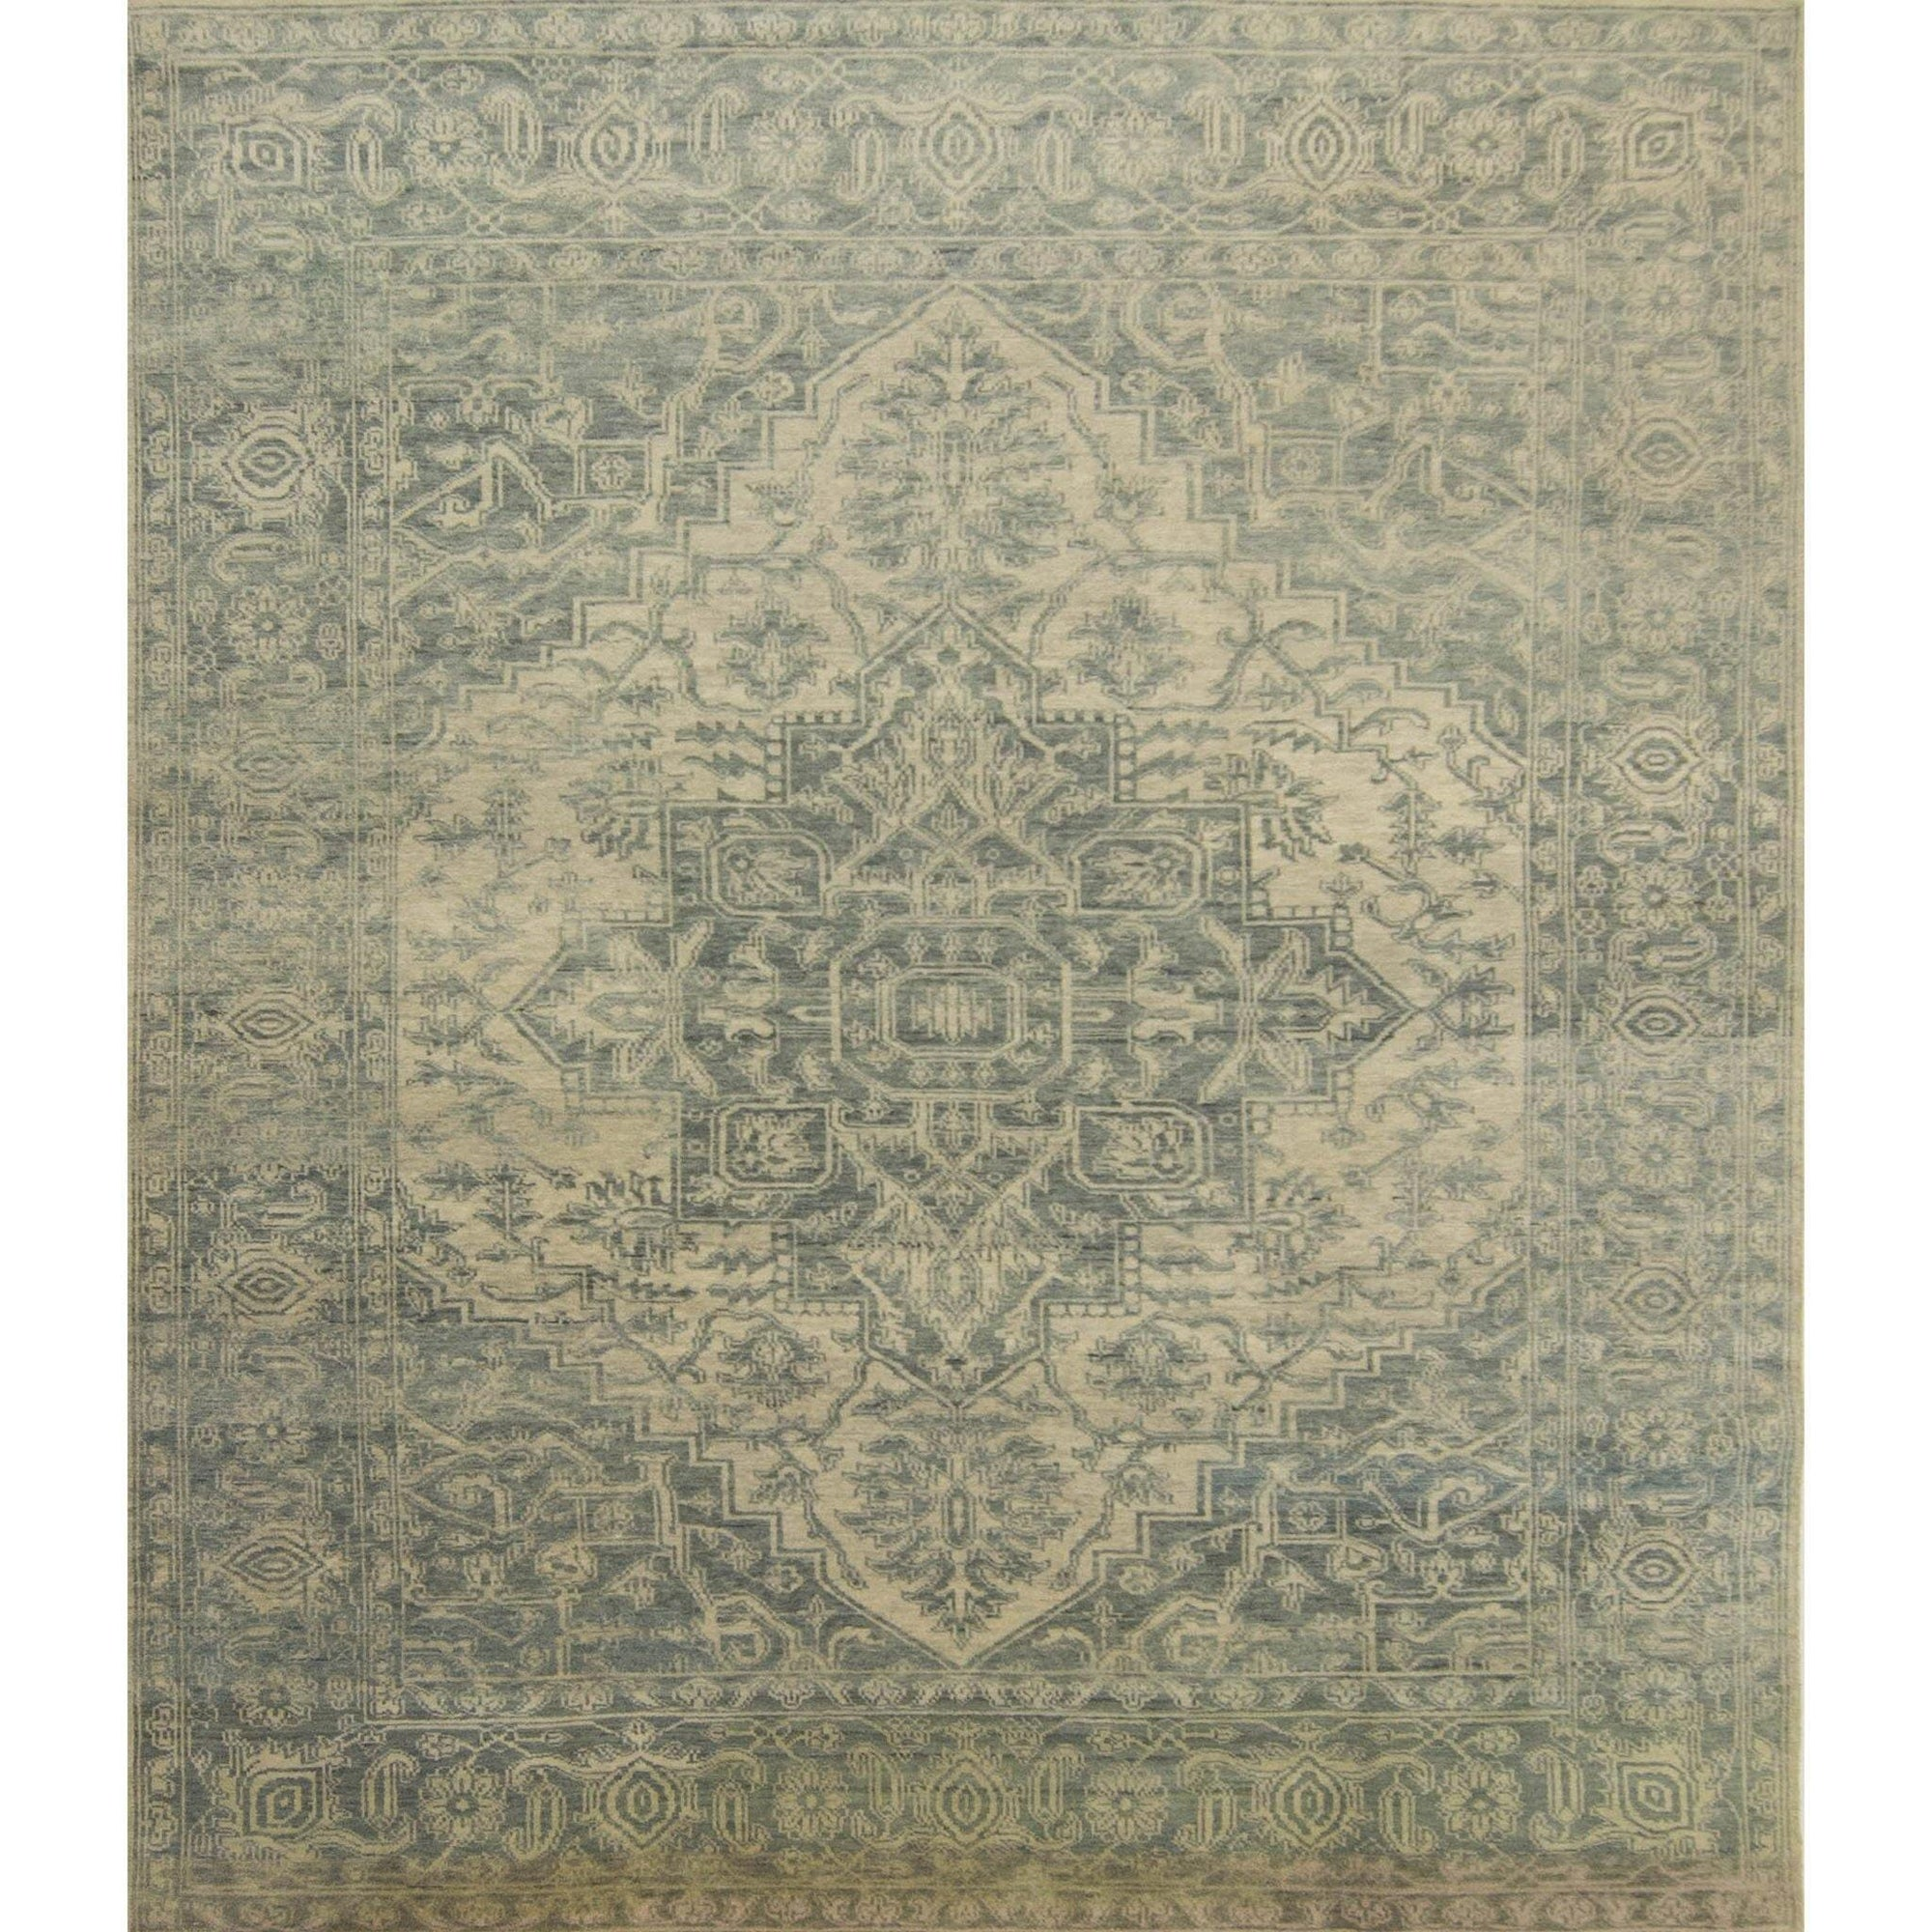 Modern Hand-knotted Wool Heriz Rug 245cm x 297cm Persian-Rug | House-of-Haghi | NewMarket | Auckland | NZ | Handmade Persian Rugs | Hand Knotted Persian Rugs